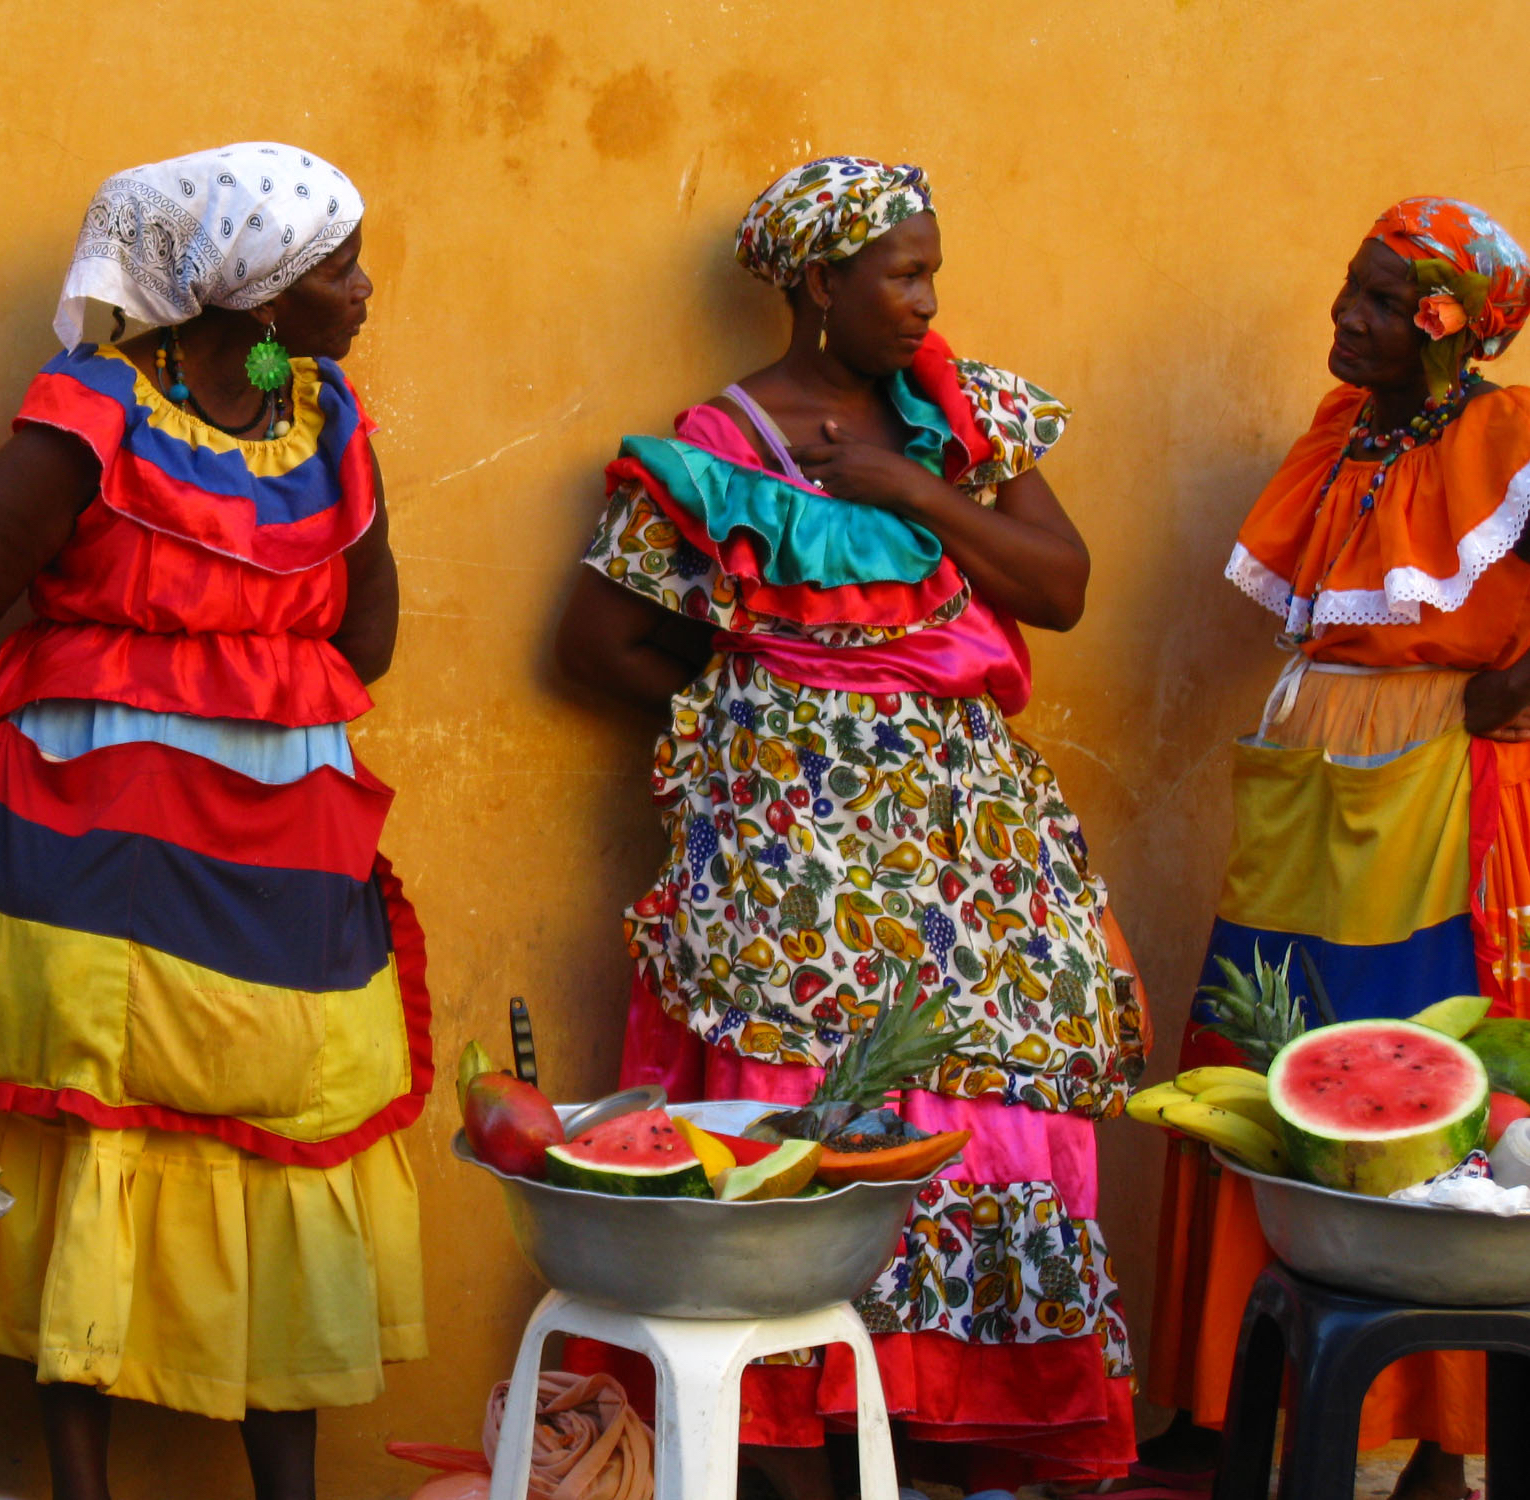 Spanish speaking activity about a photo of women selling fruit.